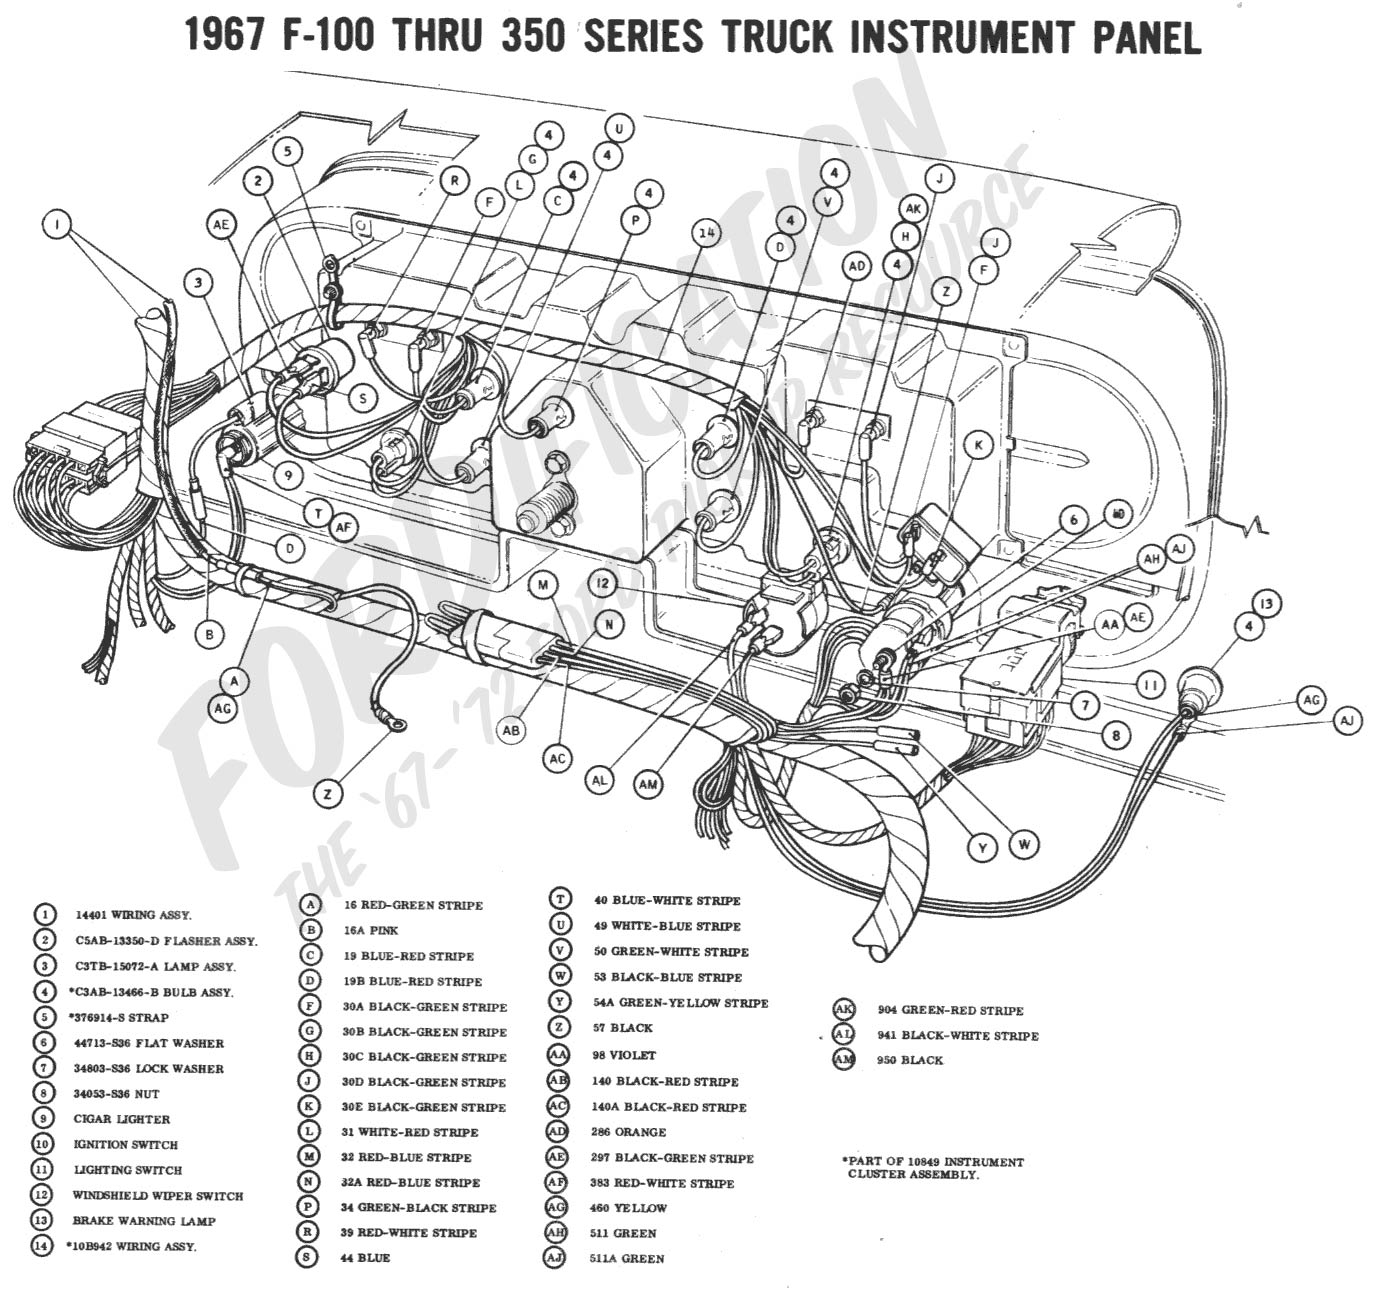 1932 Ford V8 Wiring Diagram Product Wiring Diagrams \u2022 Ford Model T Diagram  1930 Model A Ford Generator Wiring Diagrams